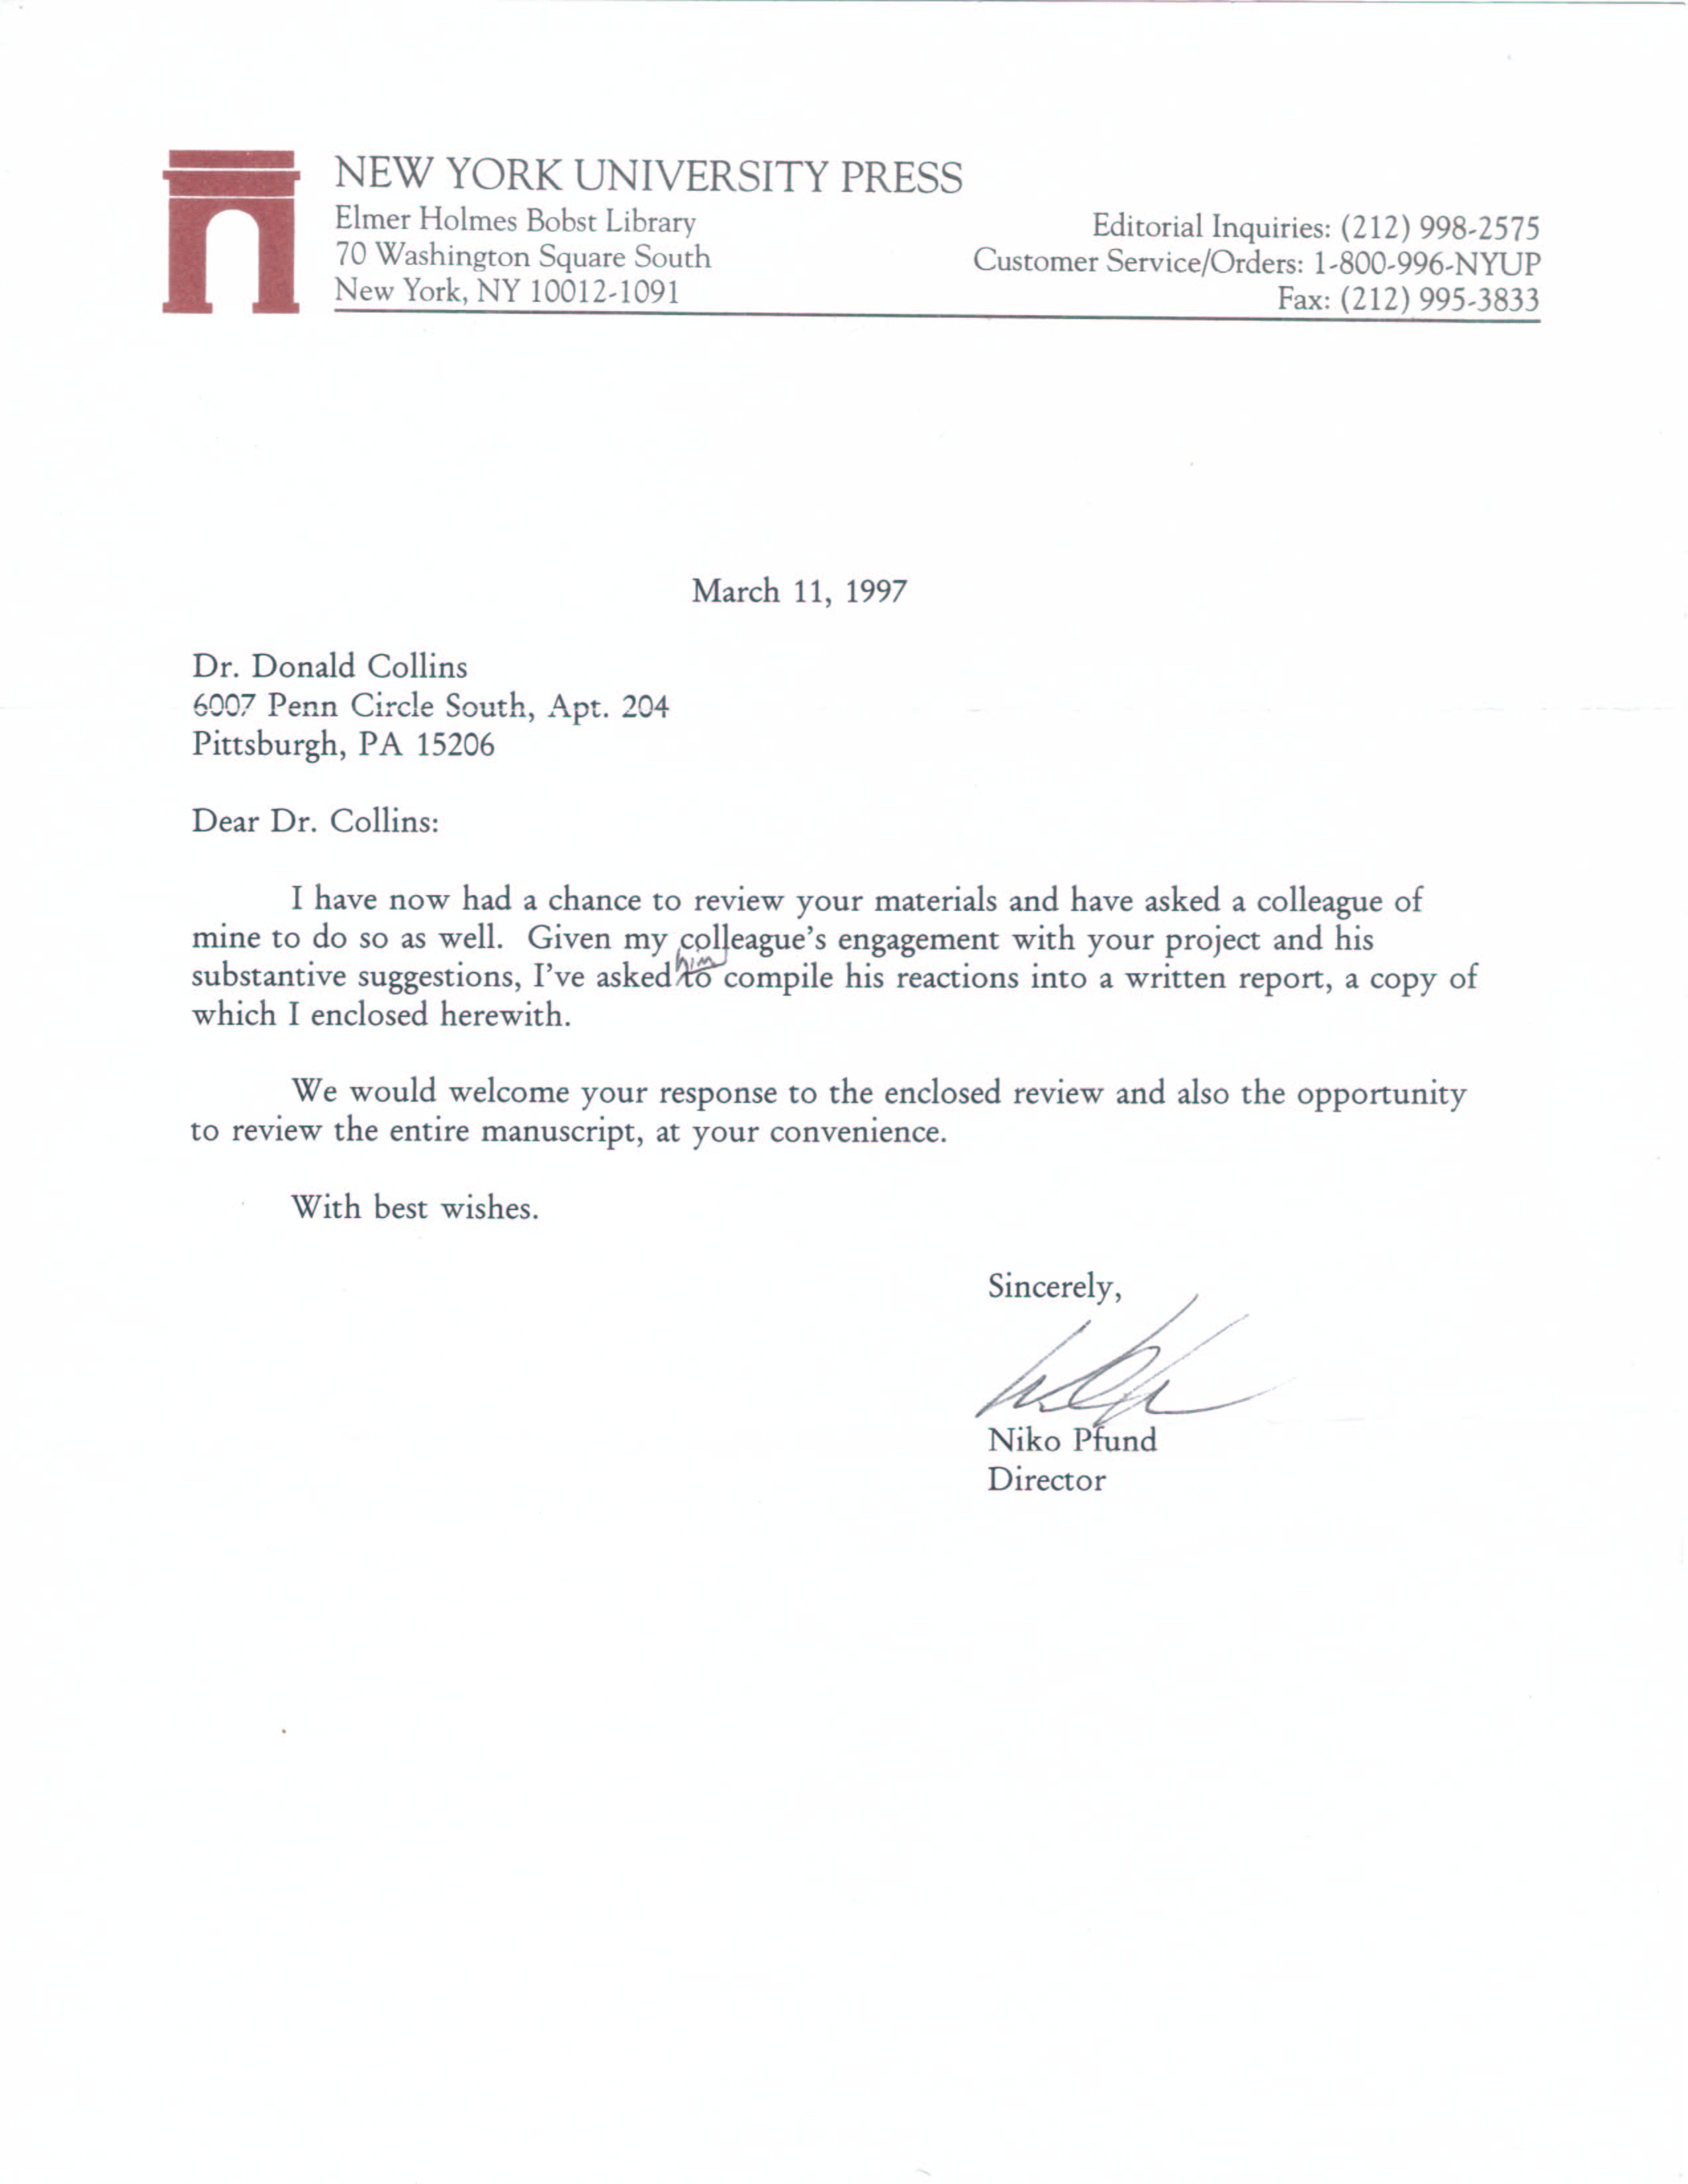 017 Nyu Press Pfund Letter Essay Prompt Wondrous Tisch Undergraduate Full